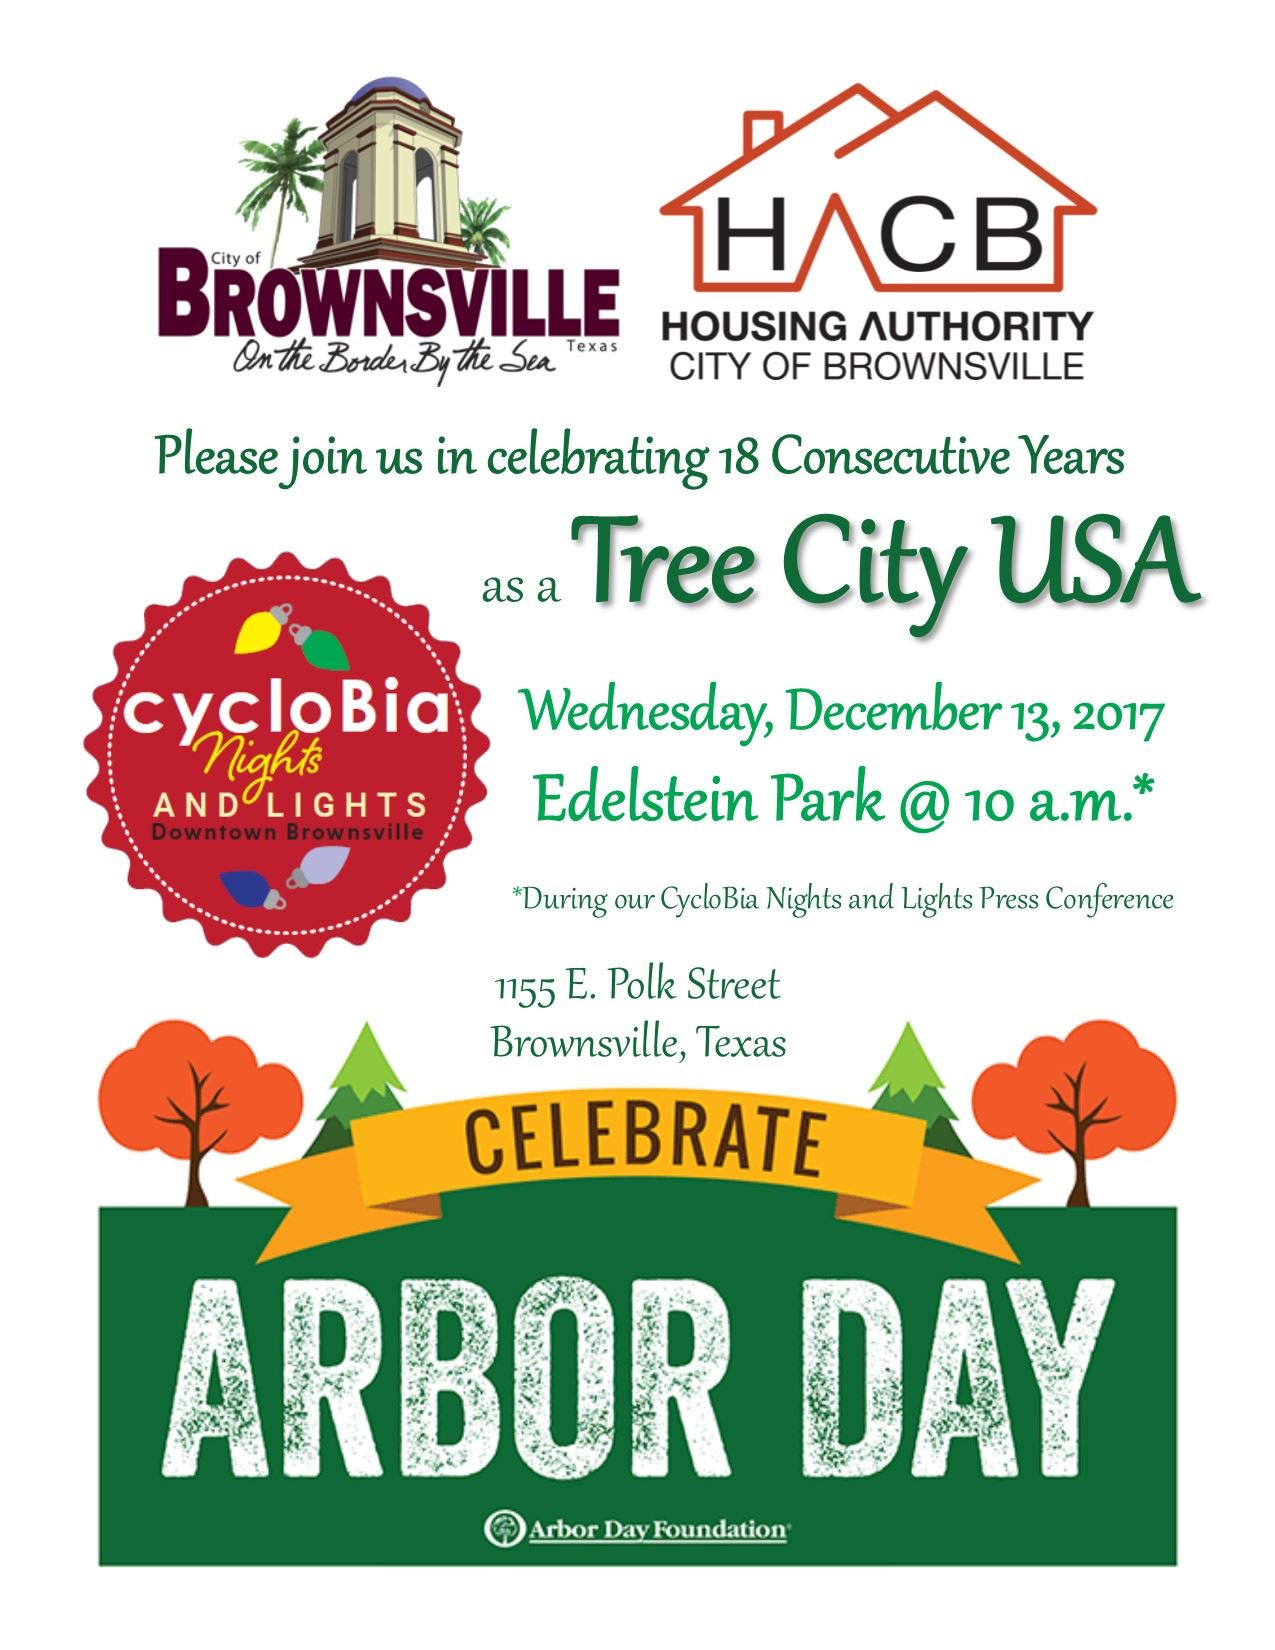 Tree City USA Celebration at CycloBia Press Conference